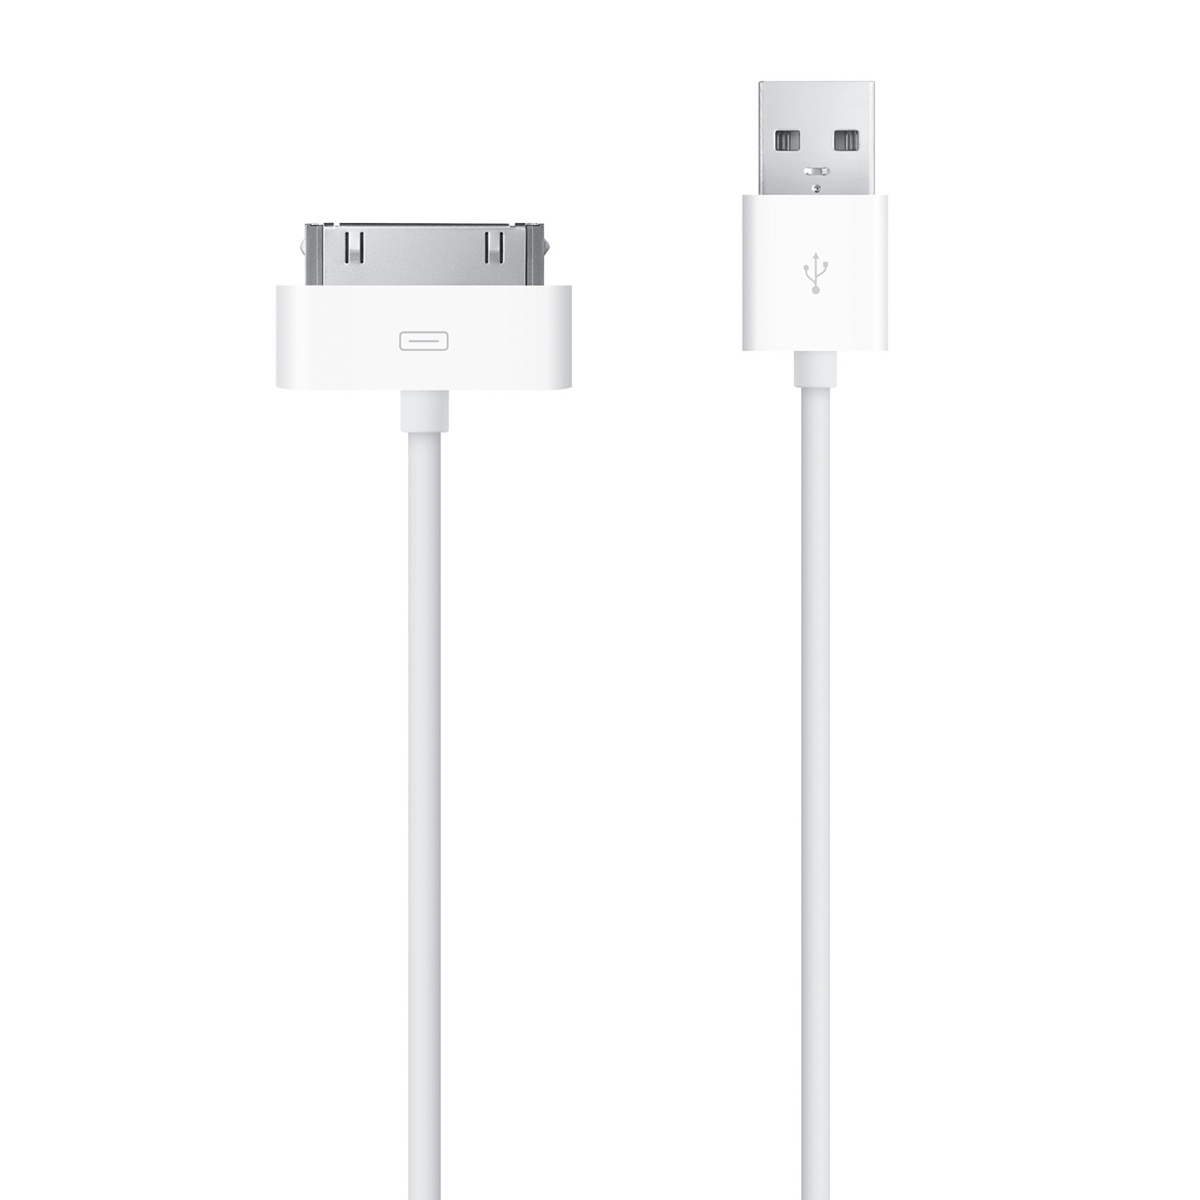 Apple USB to Dock Connector - оригинален USB кабел за iPhone, iPad и iPod (bulk)